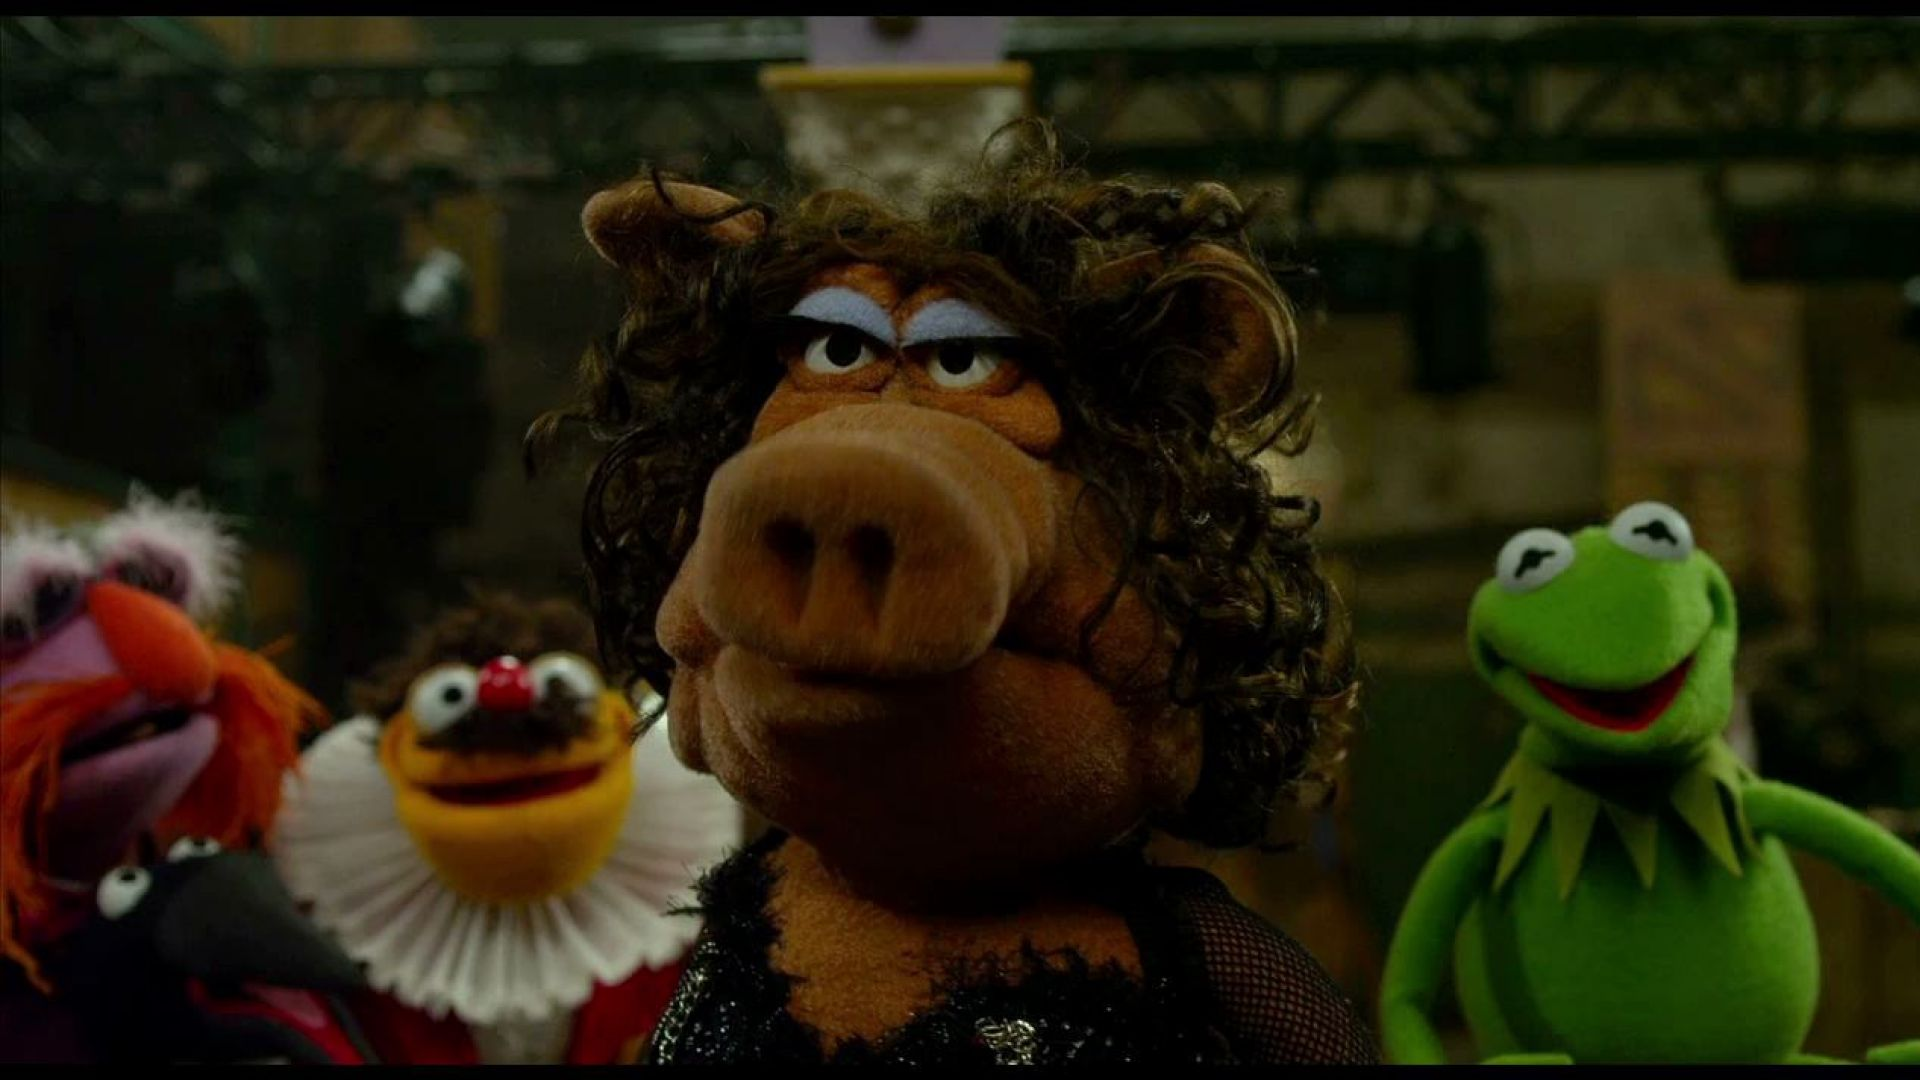 Miss Piggy has been replaced in The Muppets